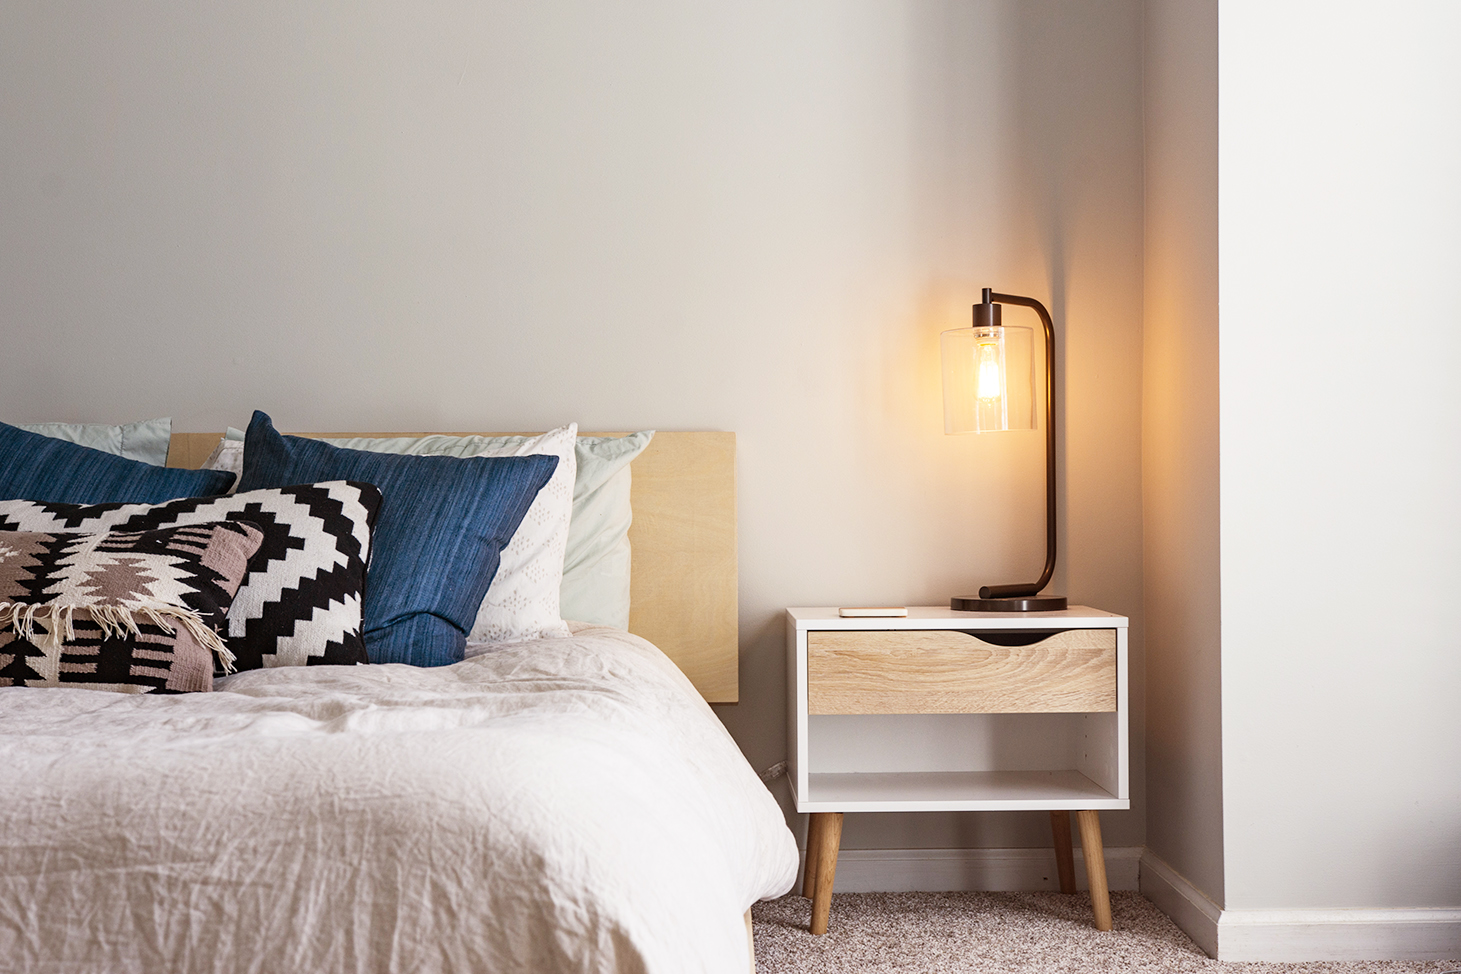 5 guest room essentials